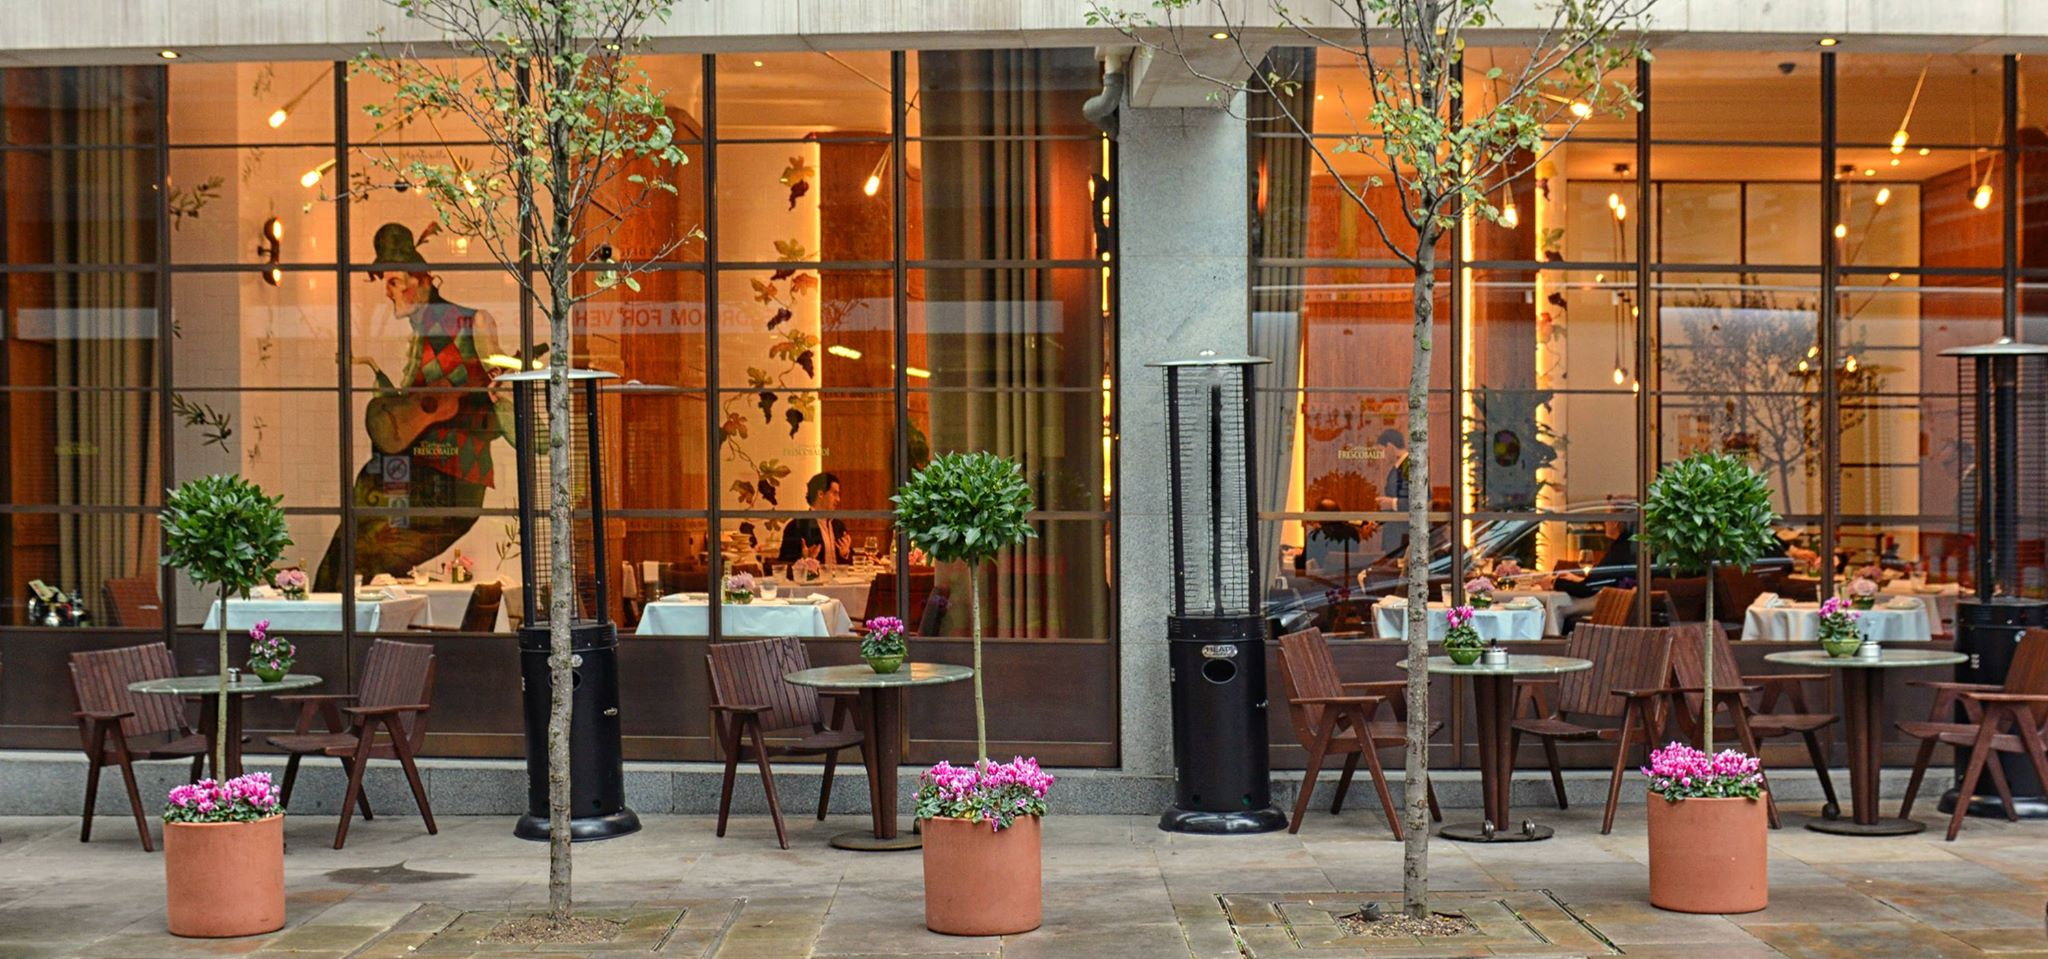 Ristorante Frescobaldi: A Taste of Tuscany Arrives in Mayfair 8